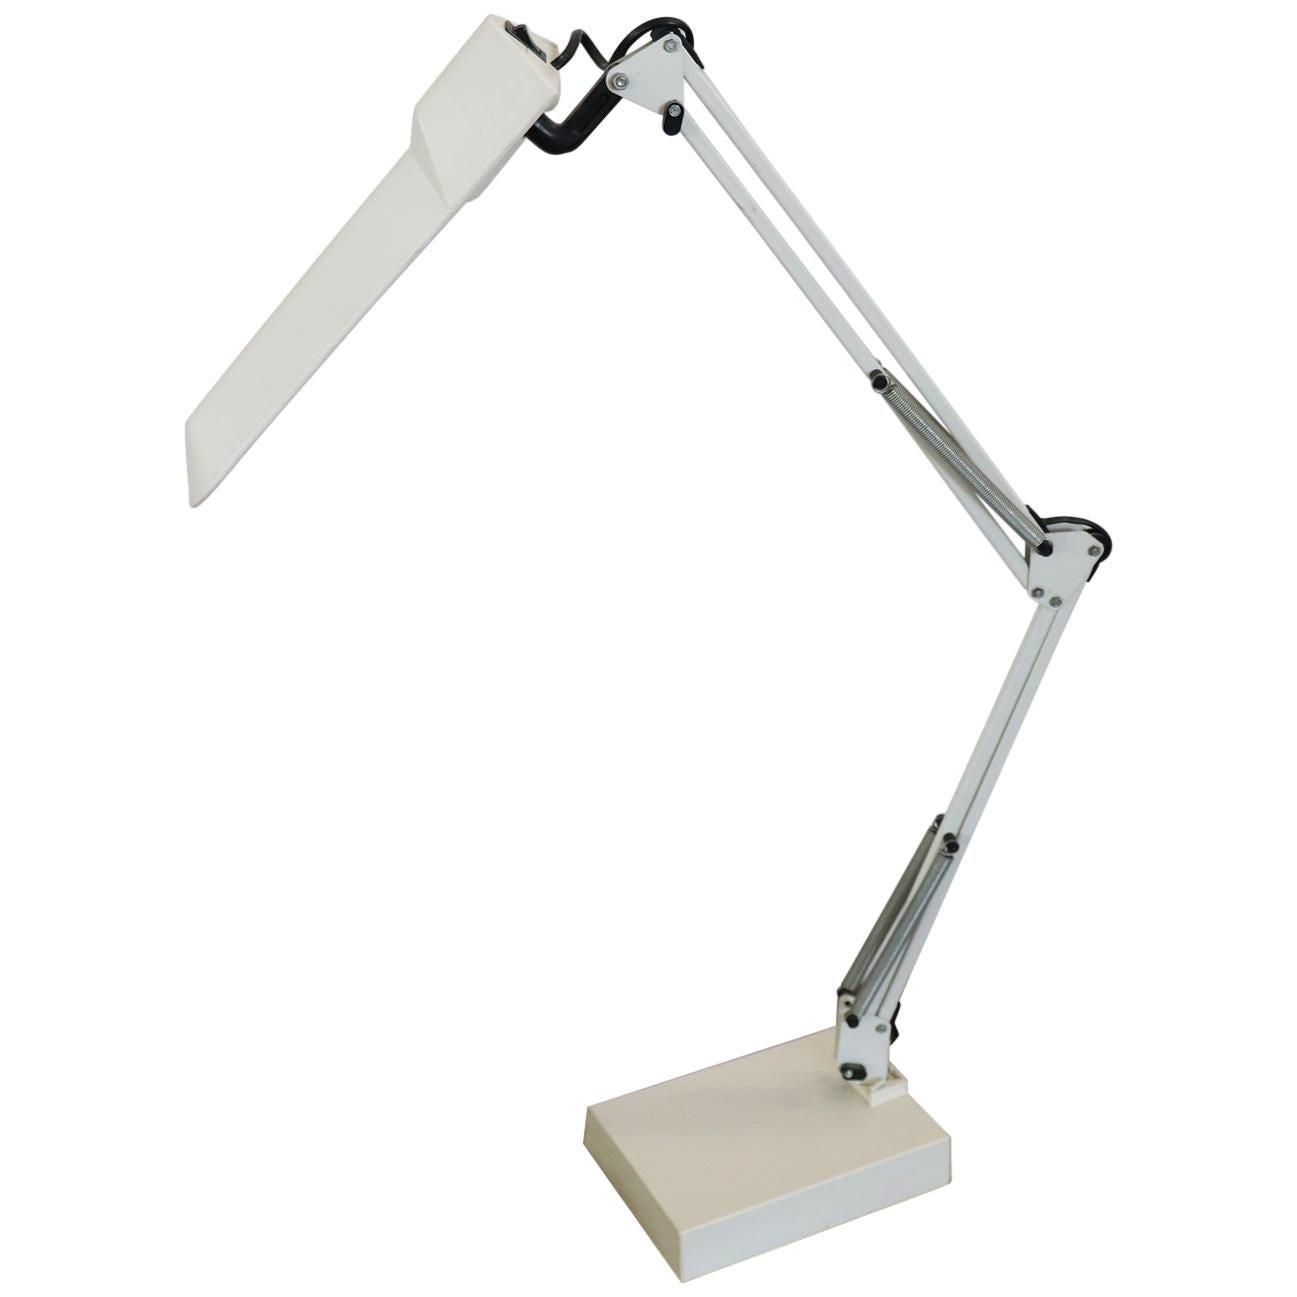 20th Century Industrial Design Adjustable Table Desk Lamp by Luxo, 1980s